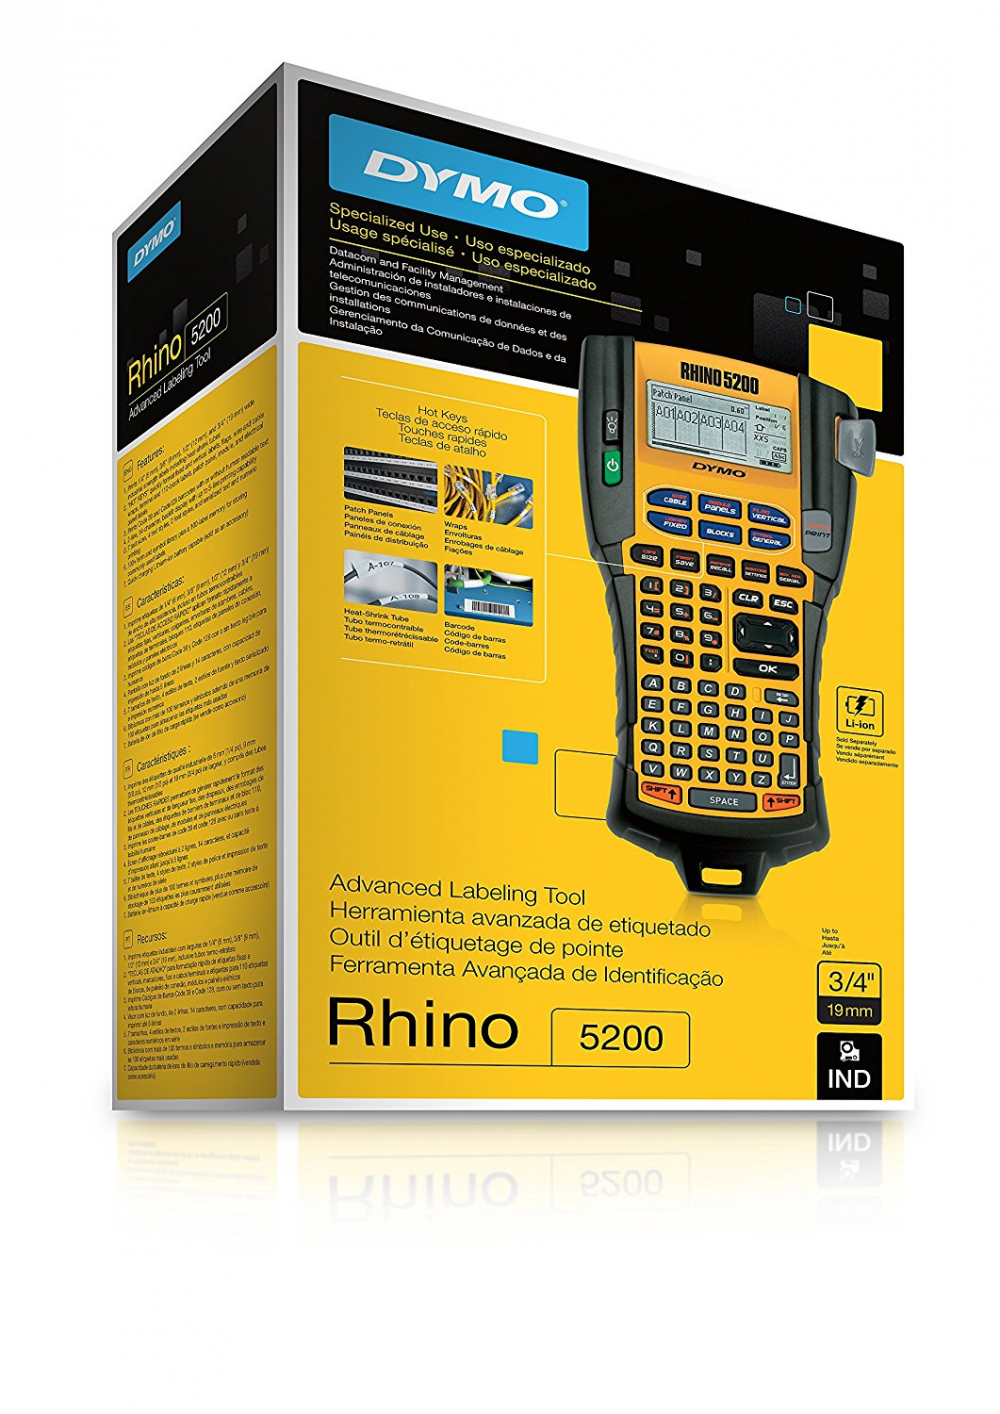 Dymo Rhinopro 5200 Label Printer Industrial Thermal Maker Labeling Tool Qwerty Keyboard 1801611 Makers Electronics 10 Of 12 Yellow Black